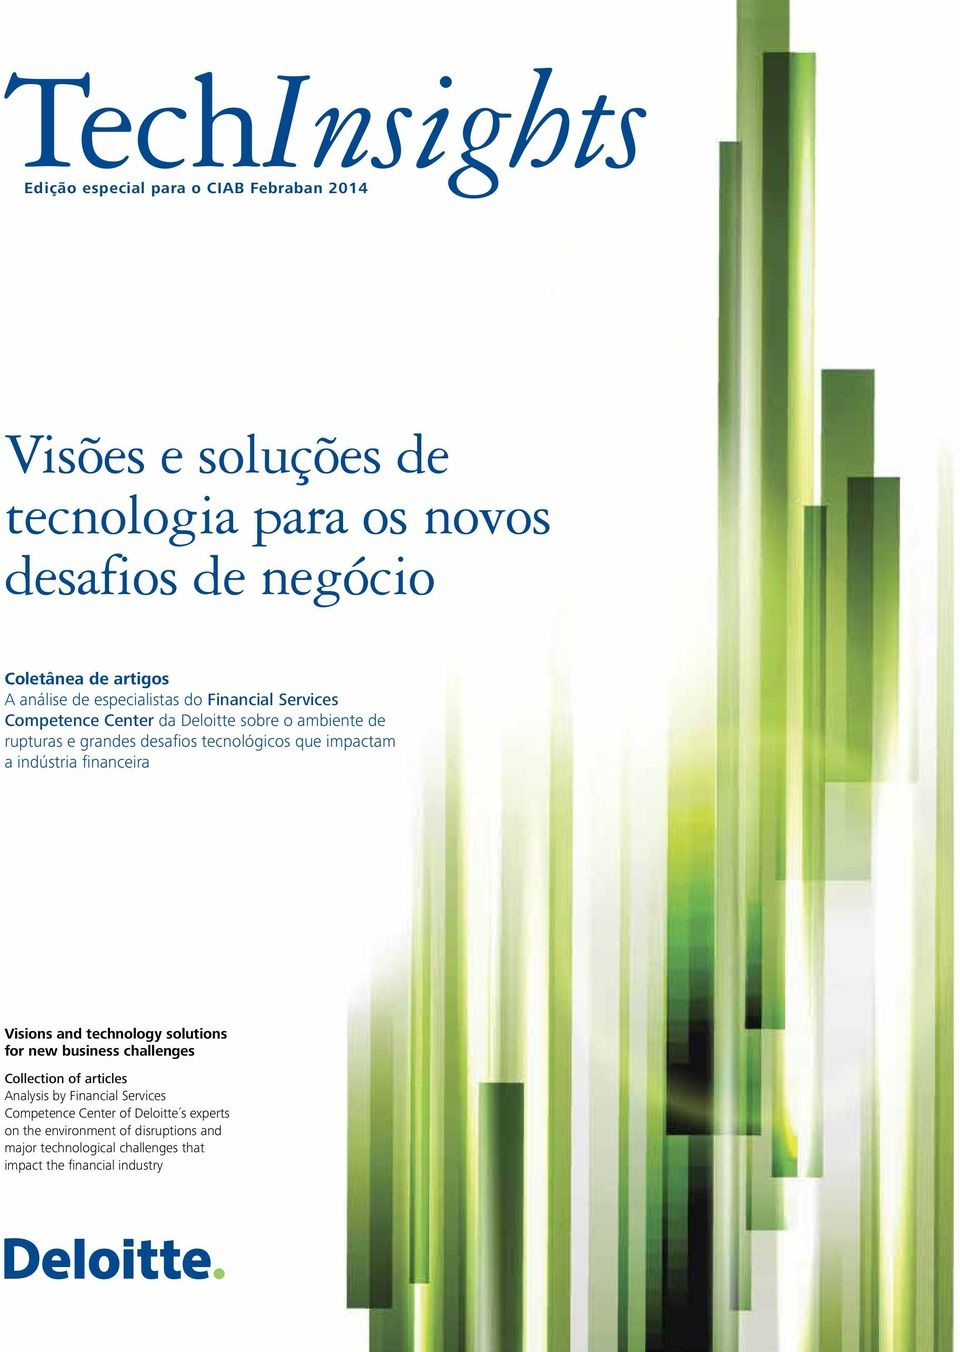 impactam a indústria financeira Visions and technology solutions for new business challenges Collection of articles Analysis by Financial